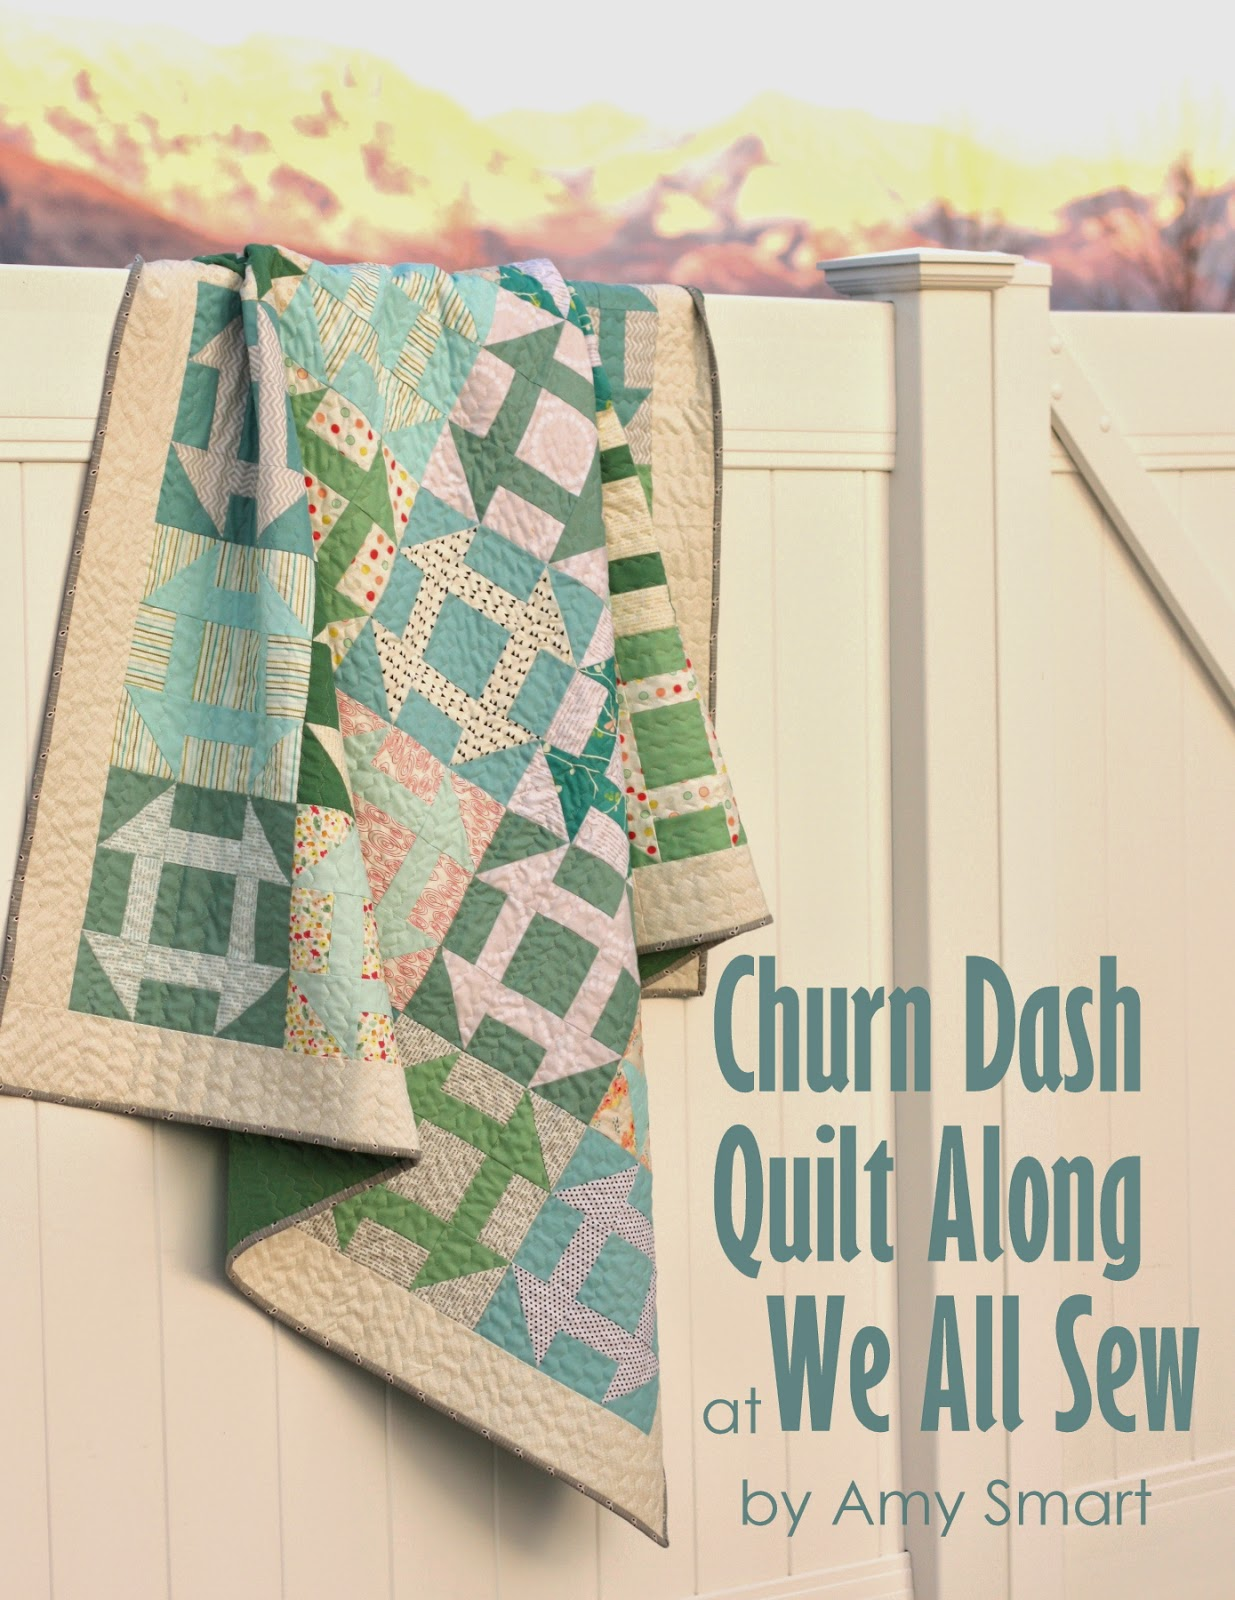 Free Churn Dash Quilt Along tutorial pattern by Amy Smart